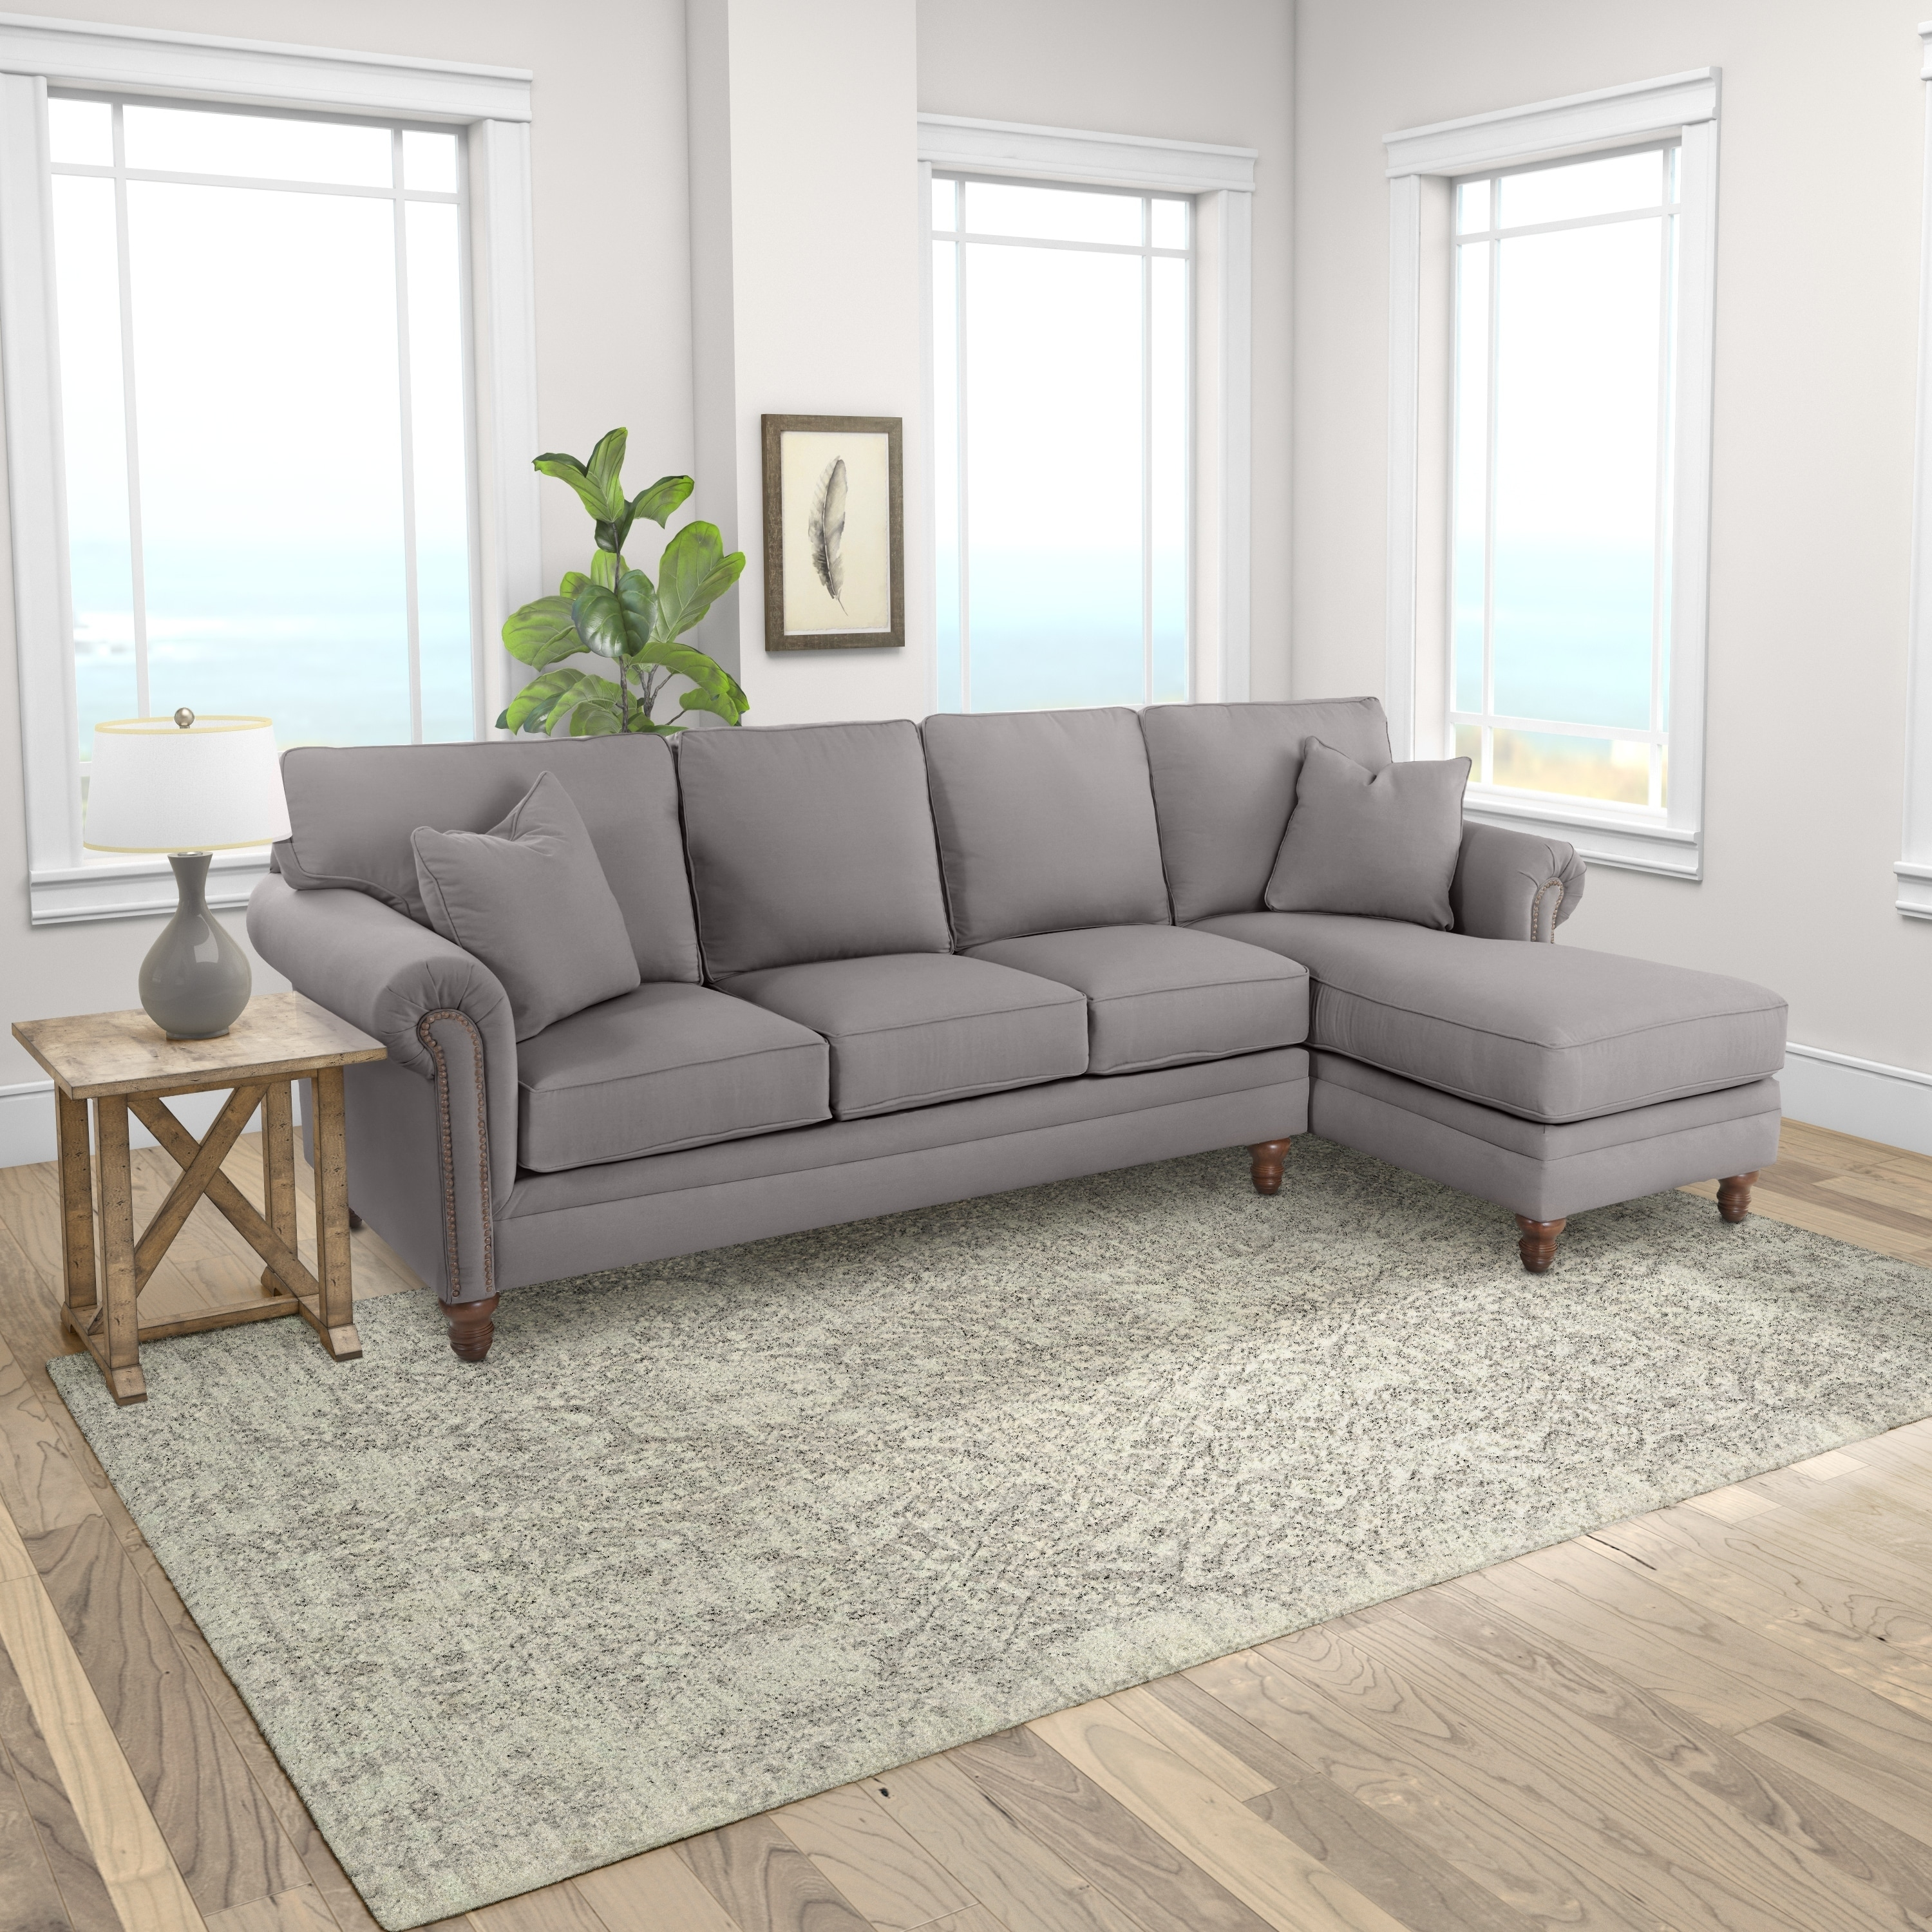 Klaussner furniture made to order carrington sofa chaise sectional